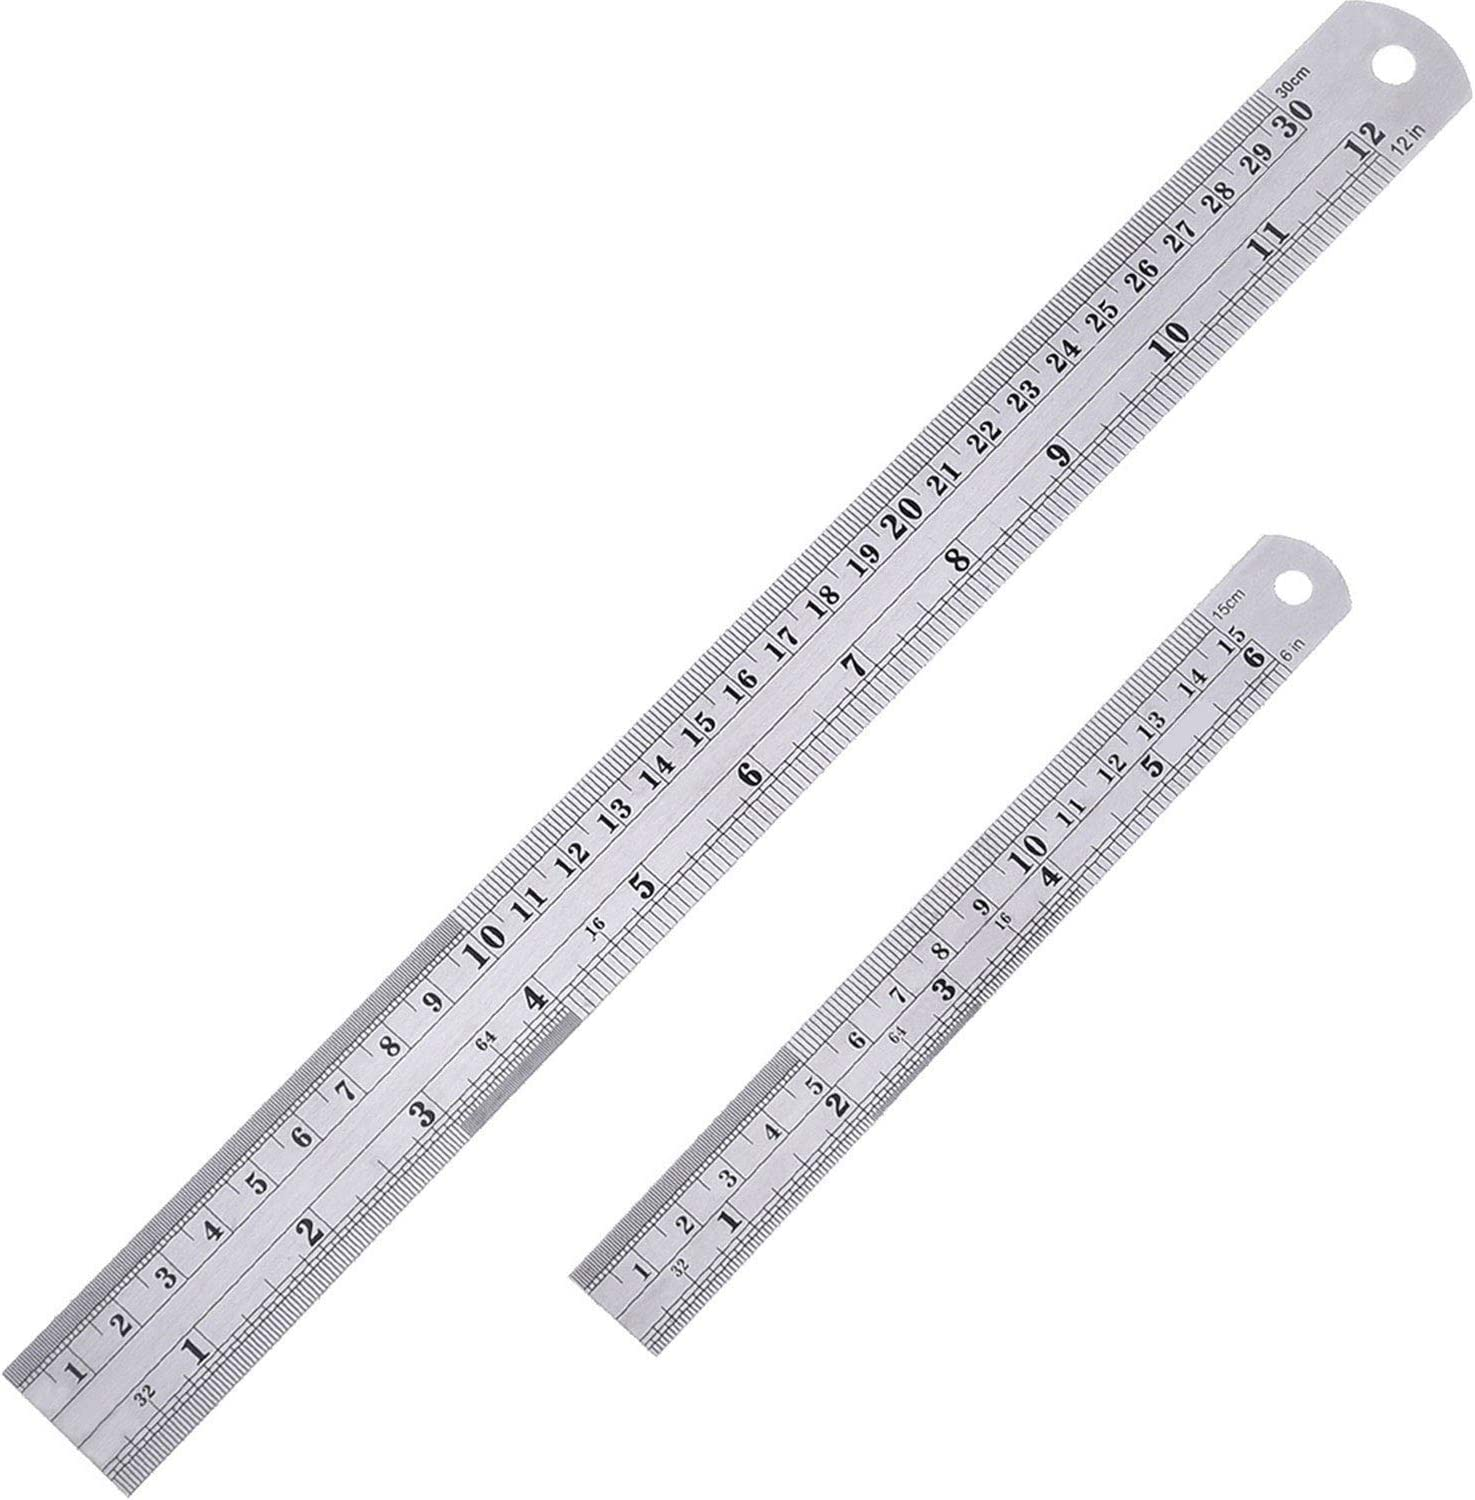 Stainless Steel Measuring Ruler Rule Scale Machinist Tools 15cm 6 inch J1I3